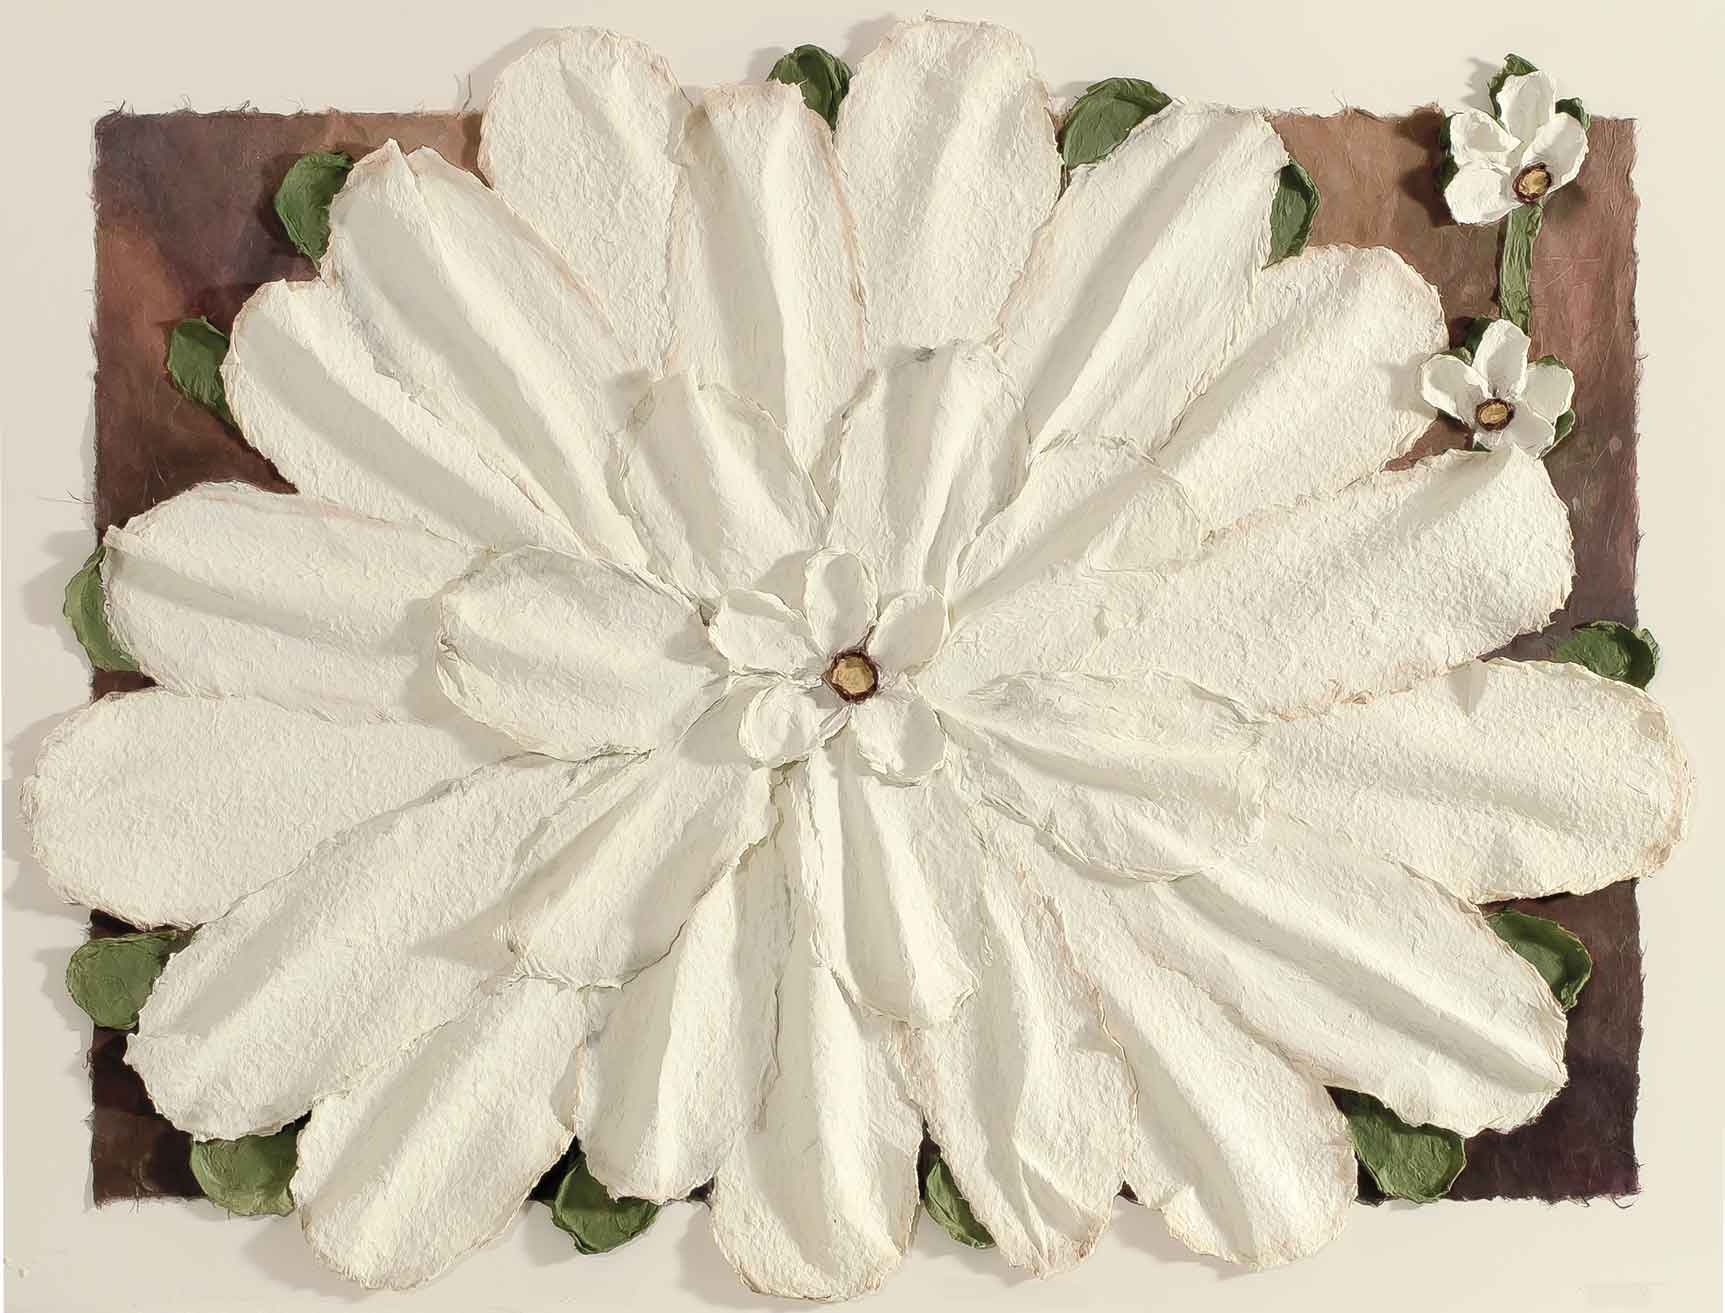 Large White Casted Flower 30x40